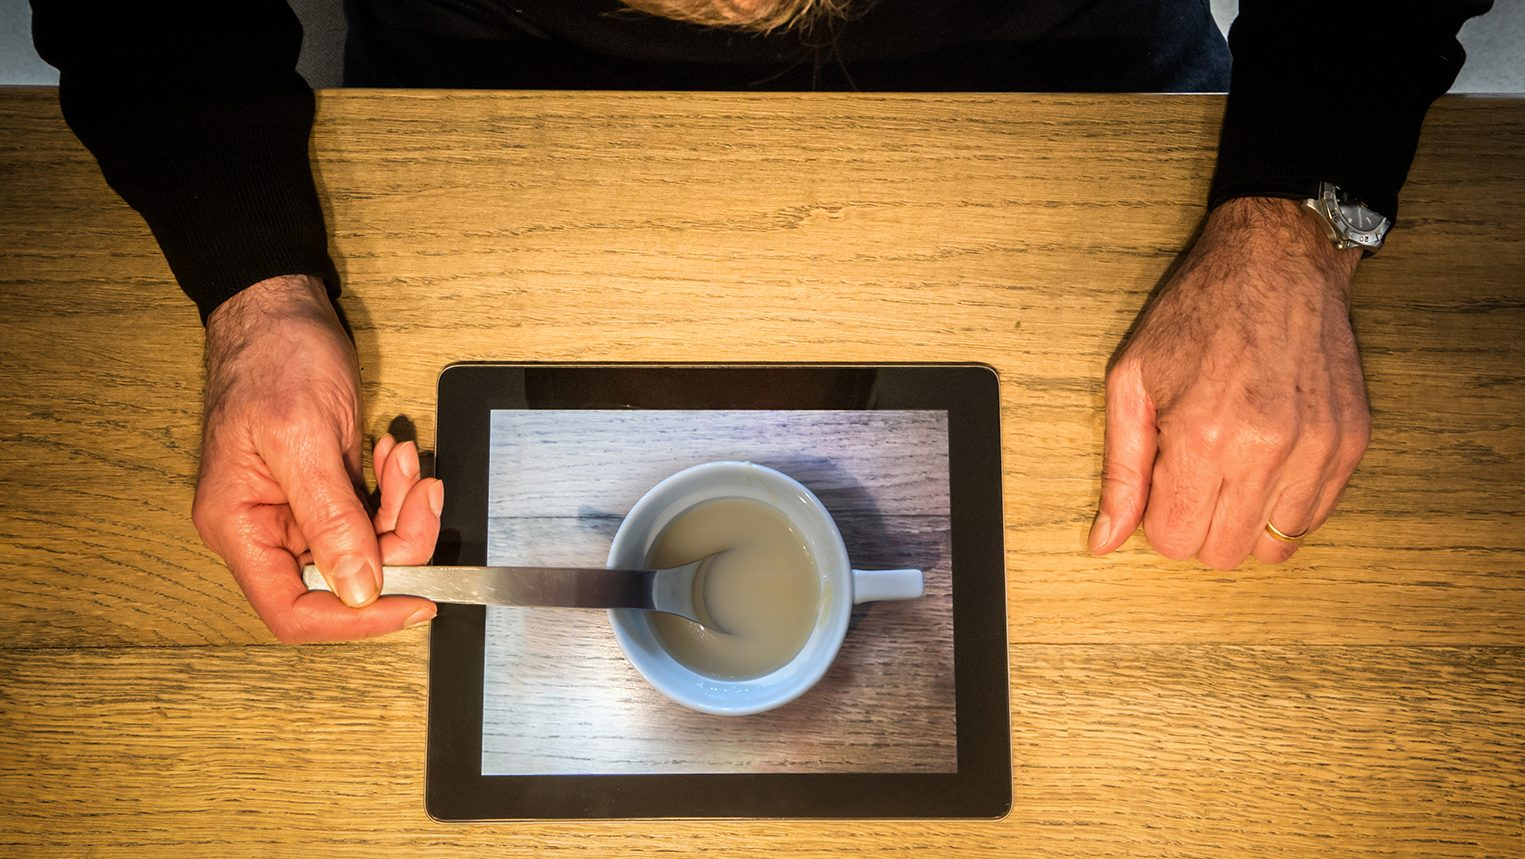 The ex-Design Ethicist for Google explains how tech can control you without you even realizing it. (Getty Images)